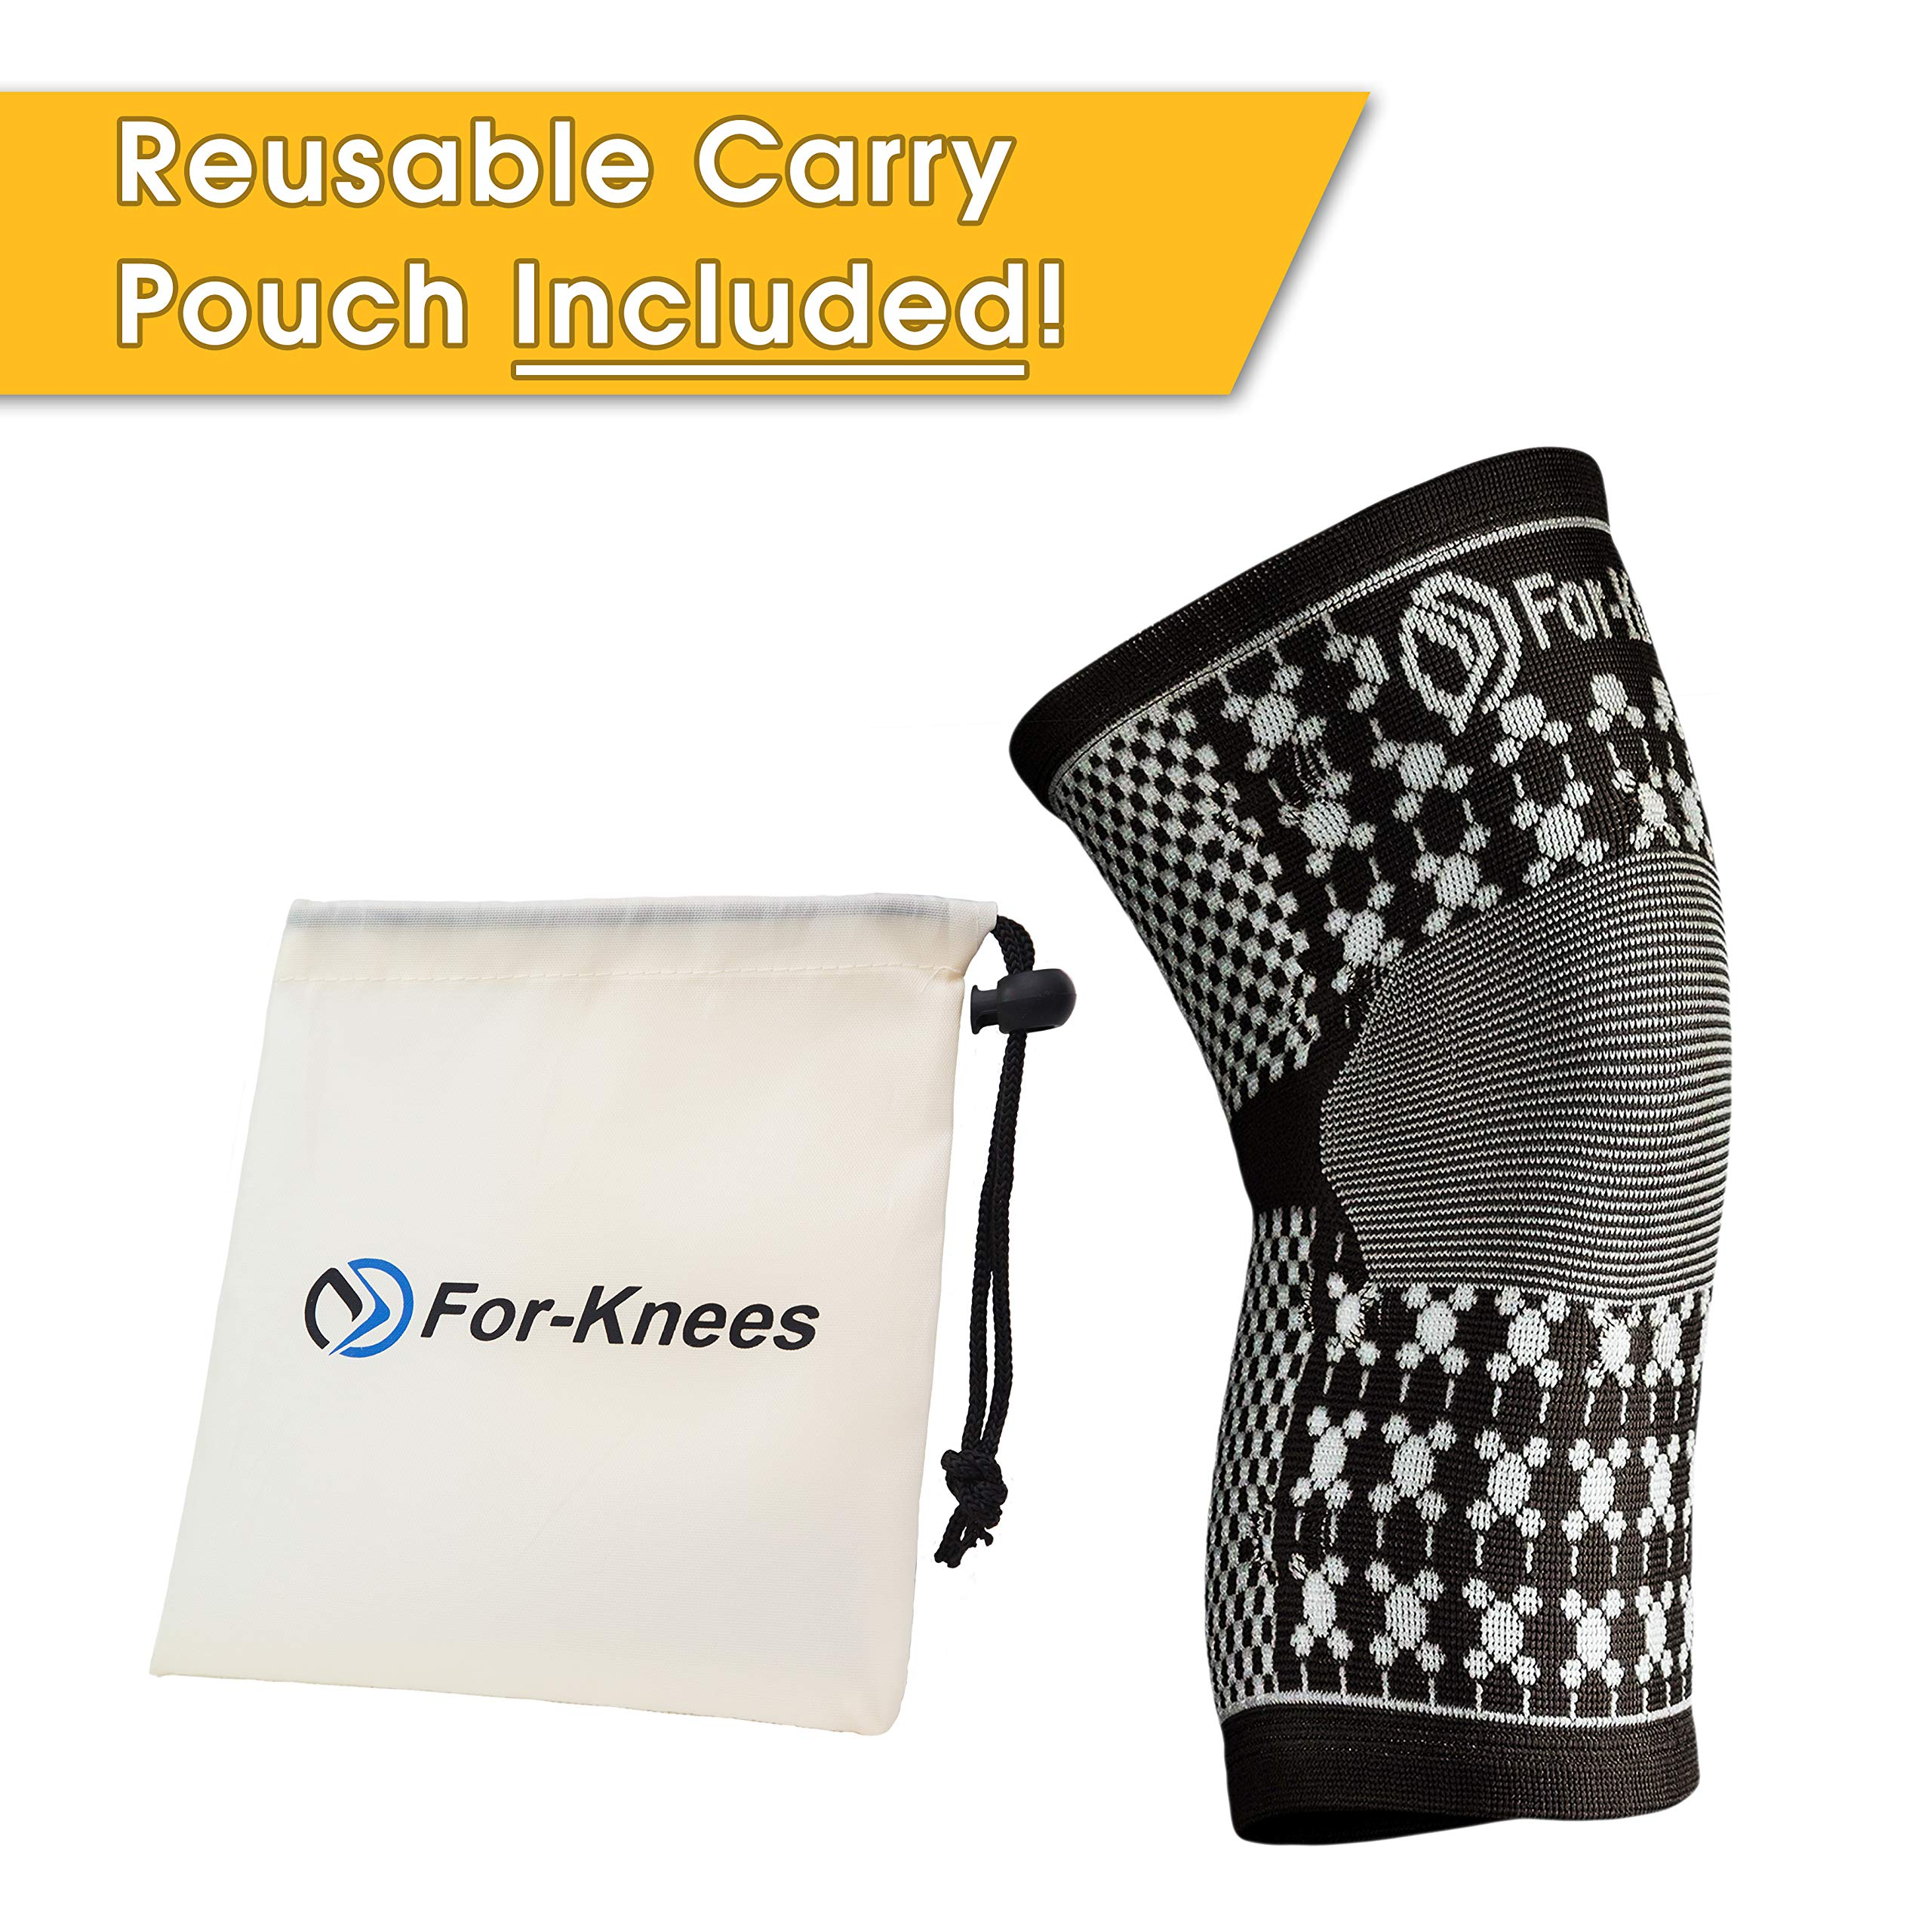 For-Knees Magnetic Knee Compression Brace Support Sleeve -Black Natural Soft Cotton - Latex Elastic Fabric with Magnets. for Sports, Sprains Strains Arthritis Sore Knees Recovery